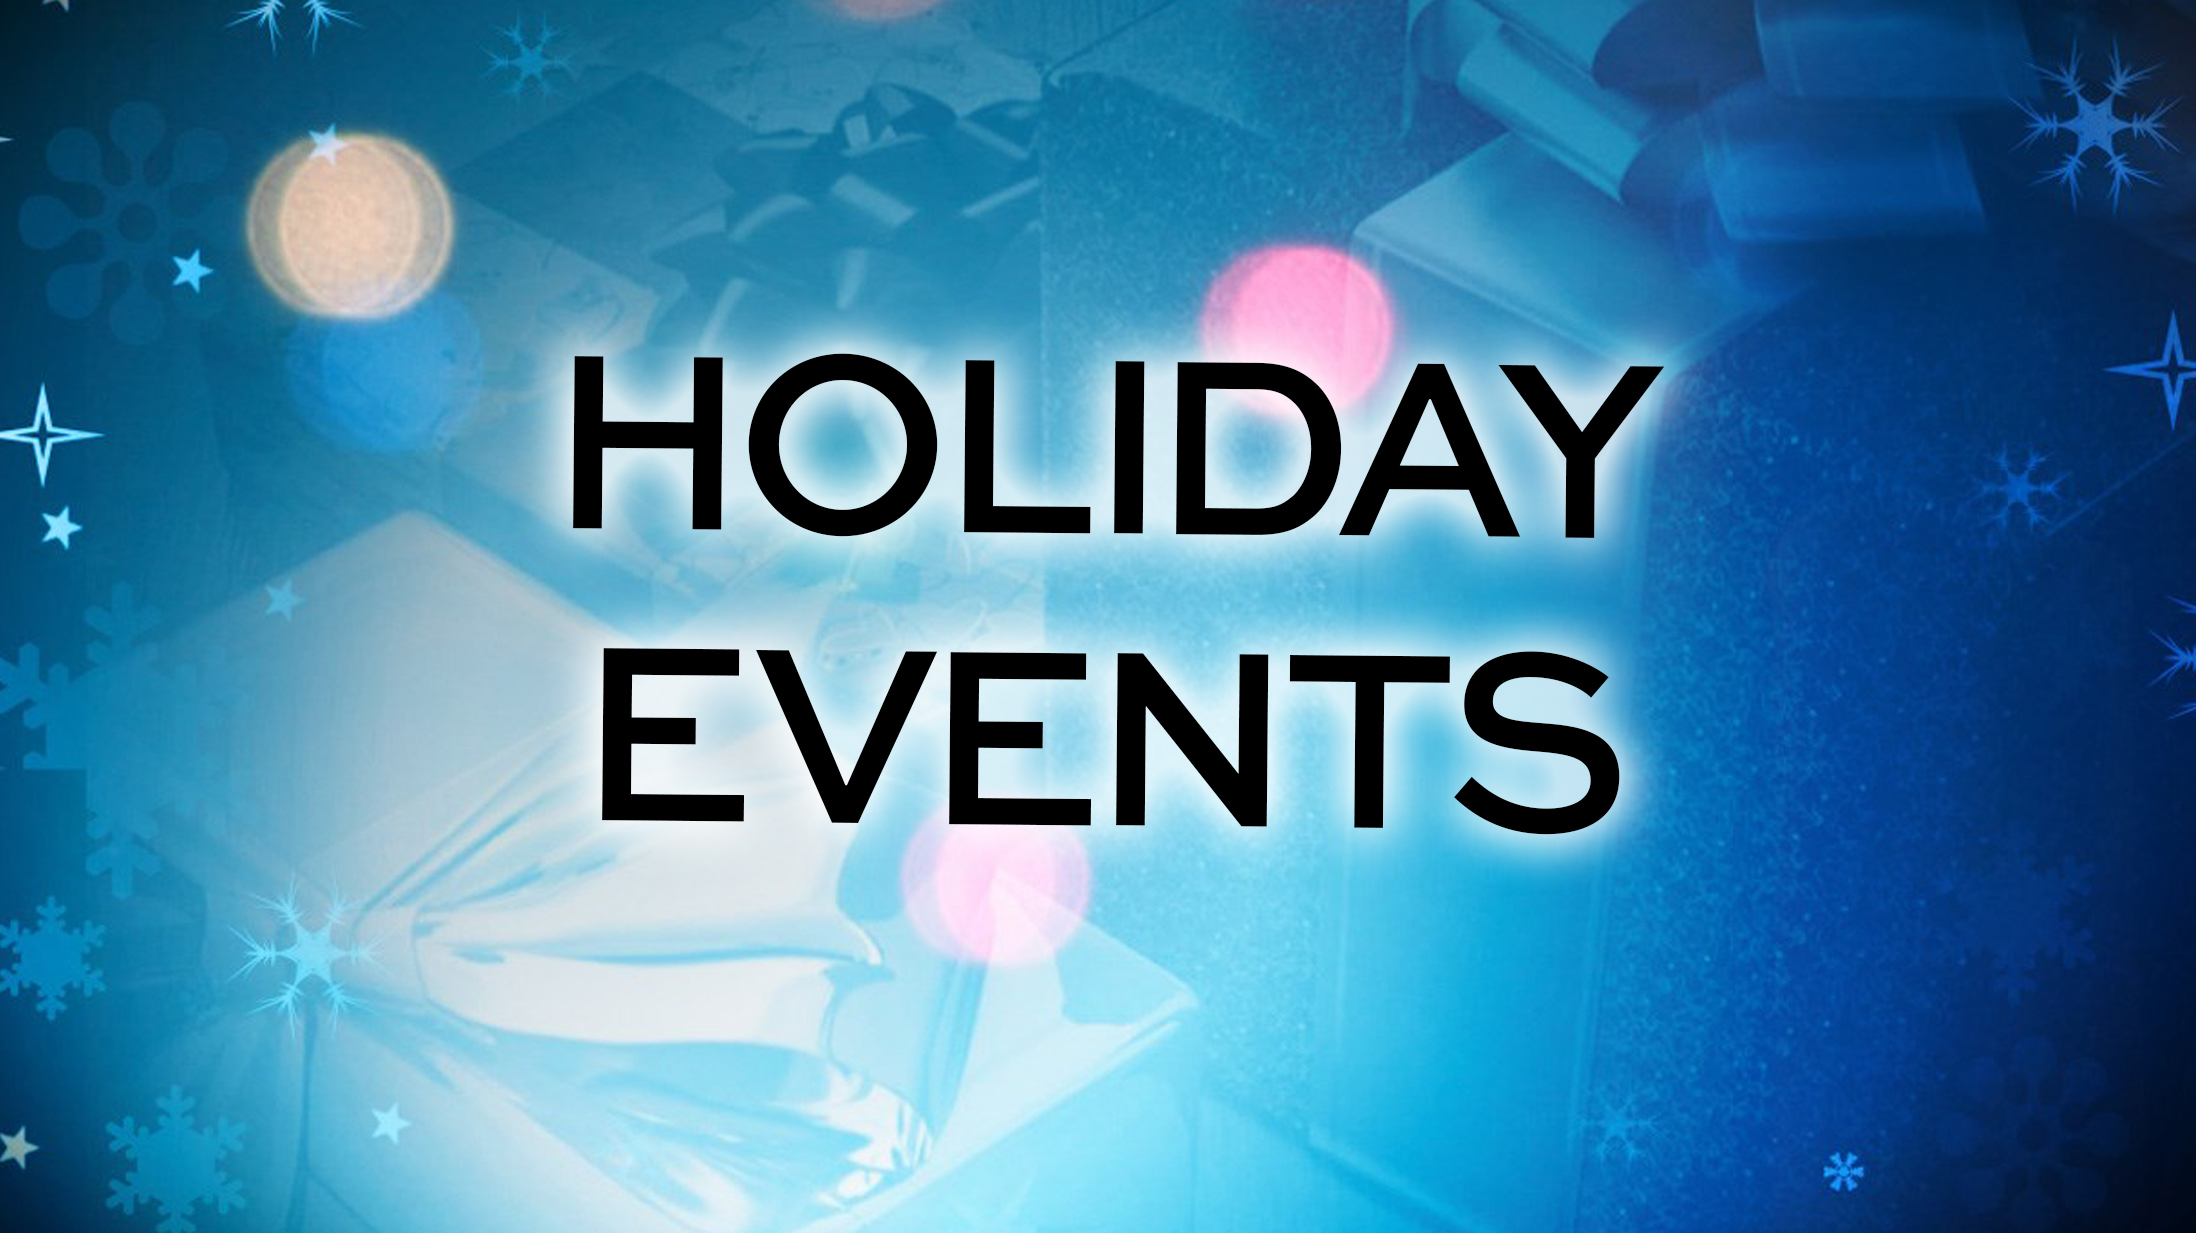 Holiday Events_1449263546193.jpg